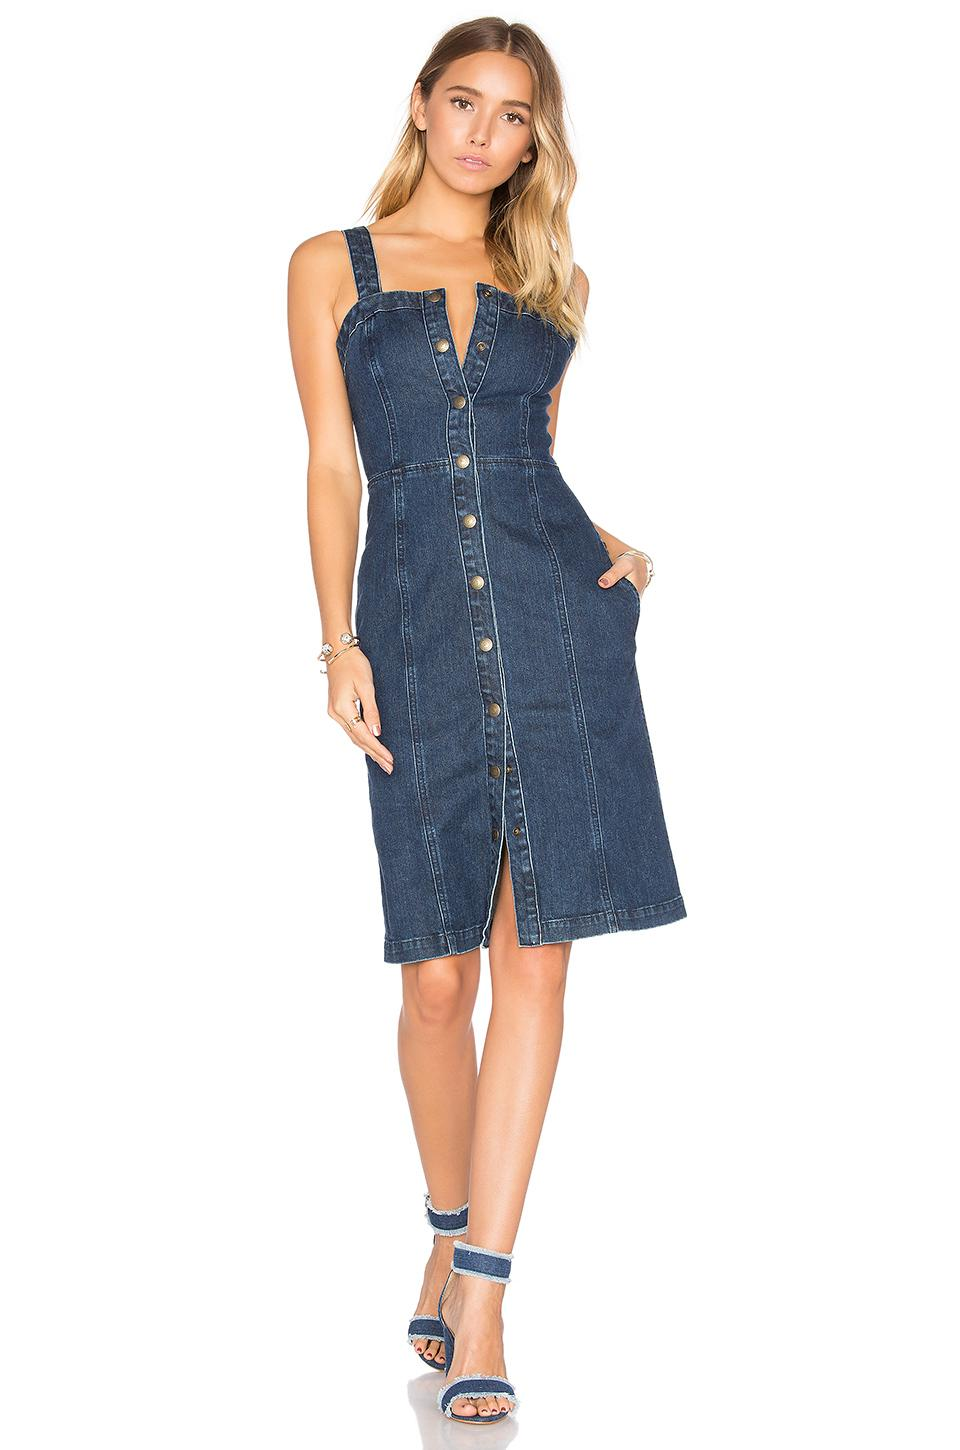 Ag jeans Sydney Denim Dress in Blue | Lyst